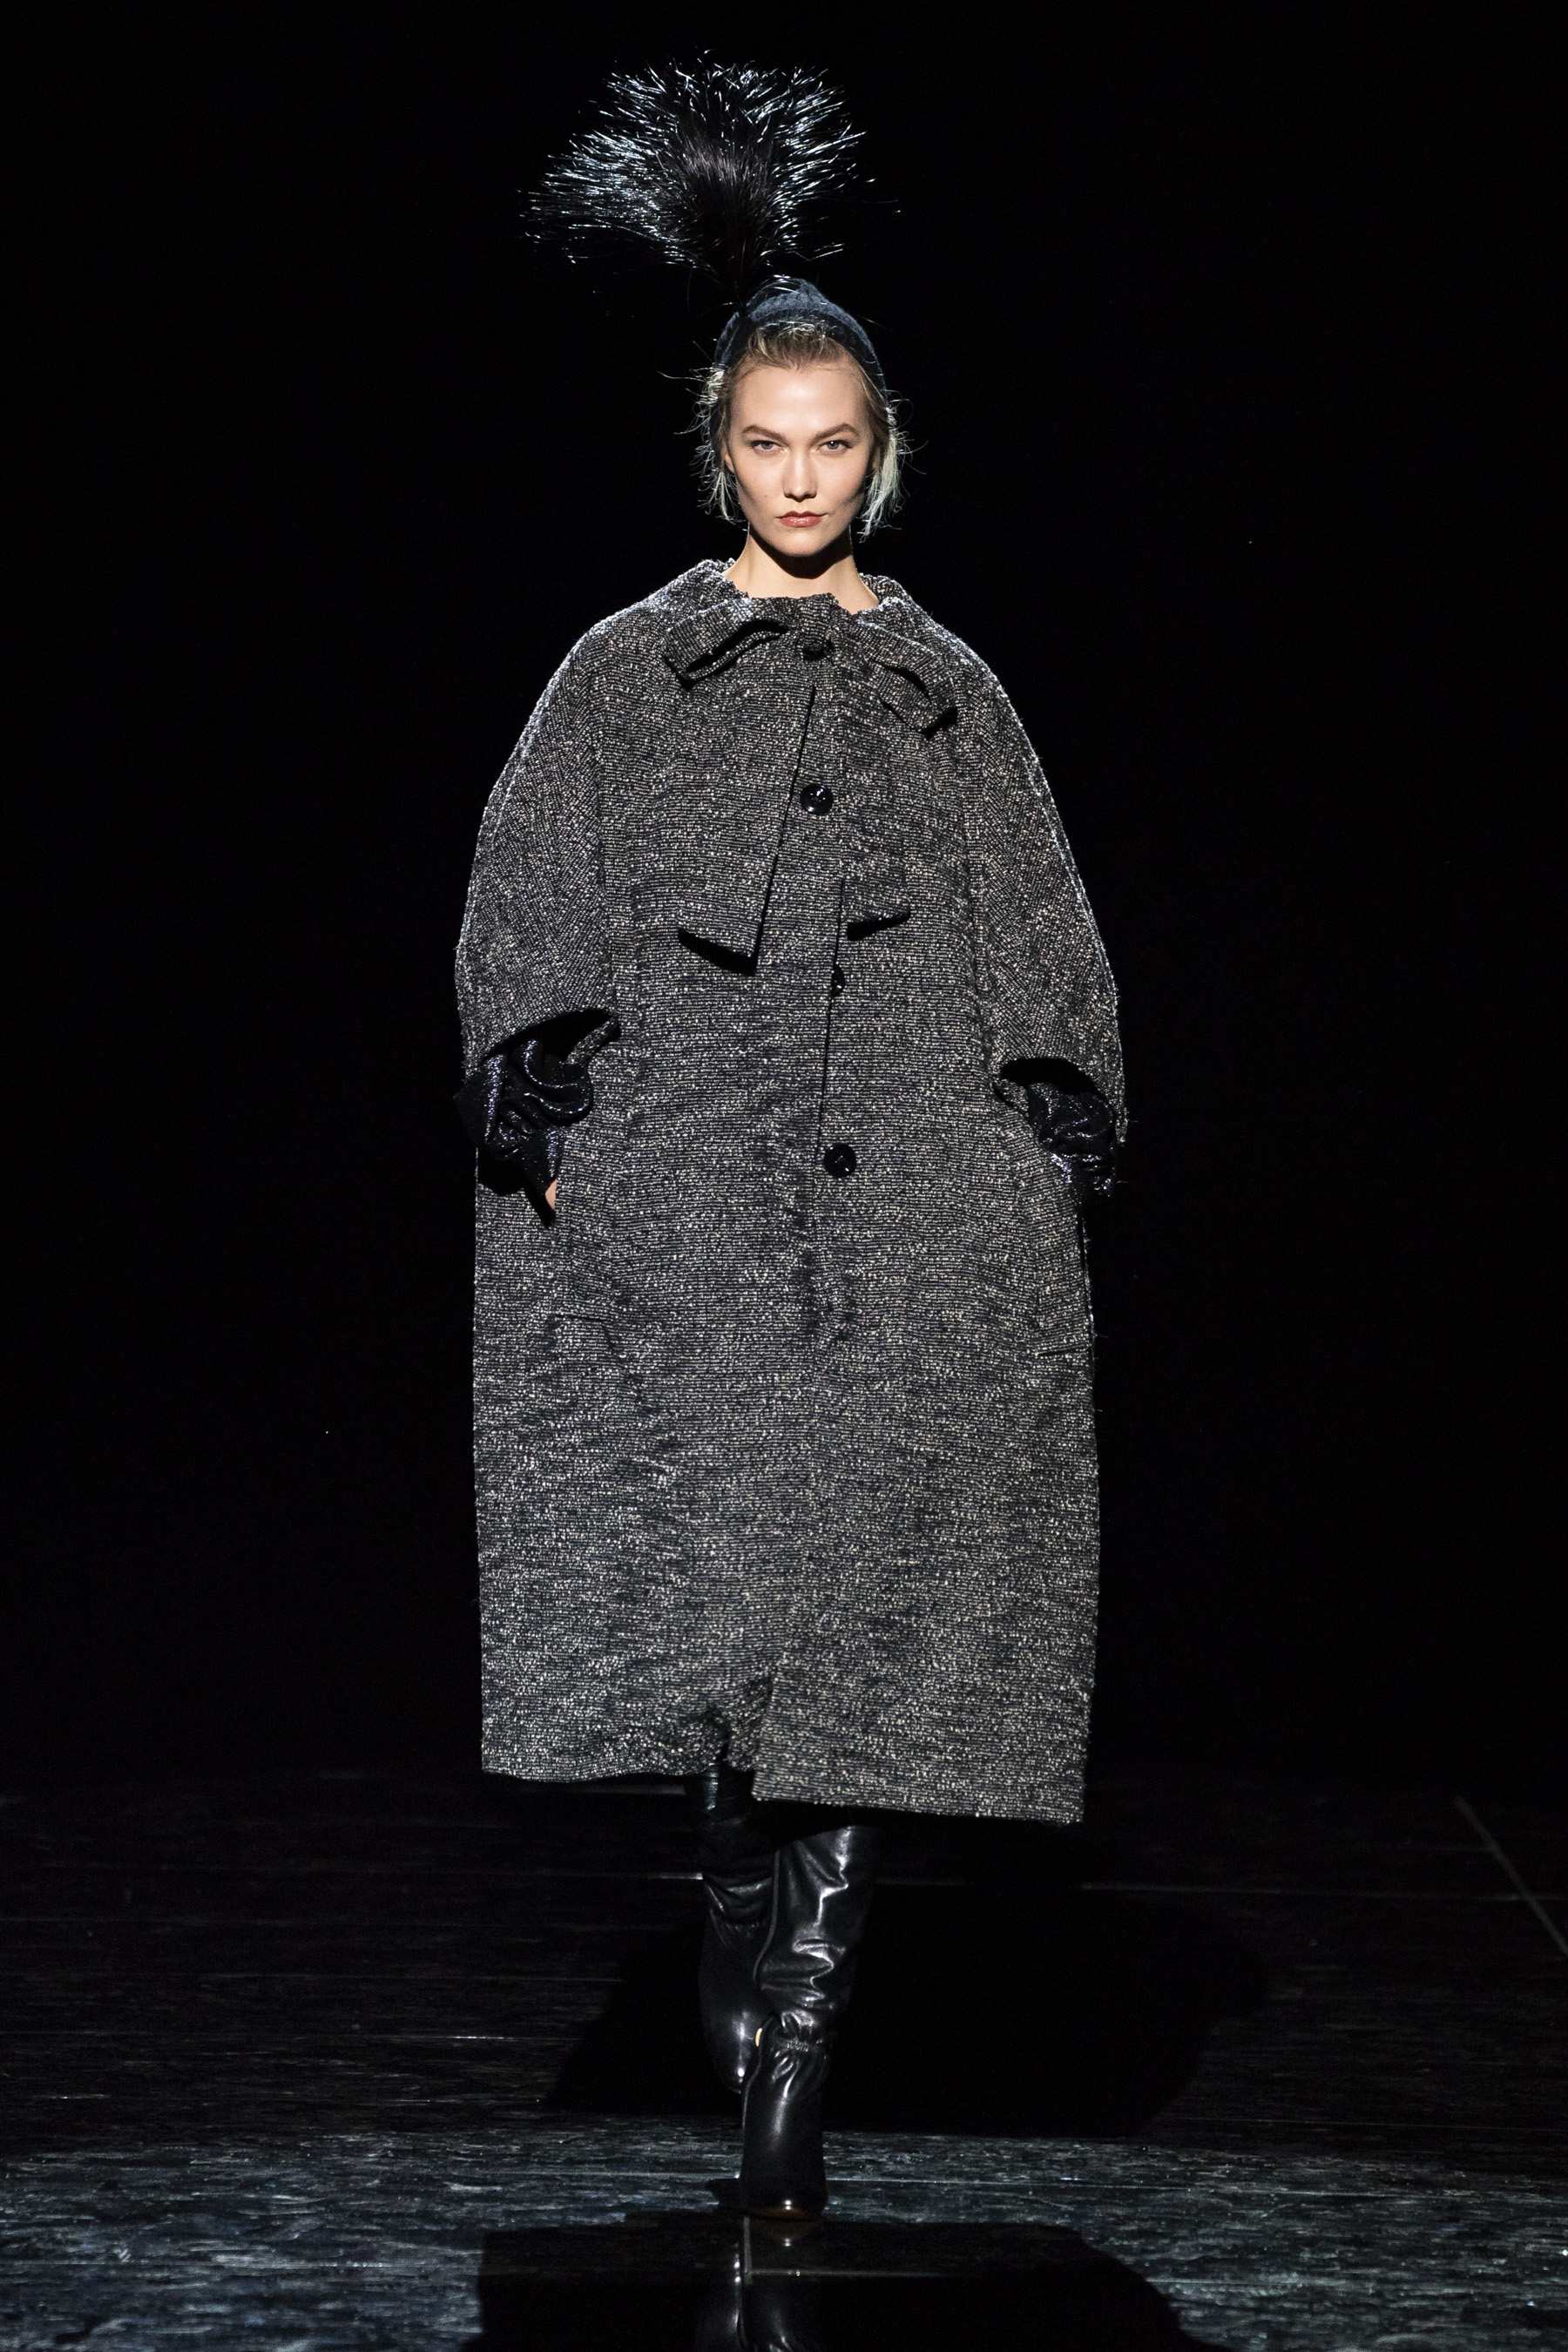 Marc Jacobs Fall 2019 Fashion Show